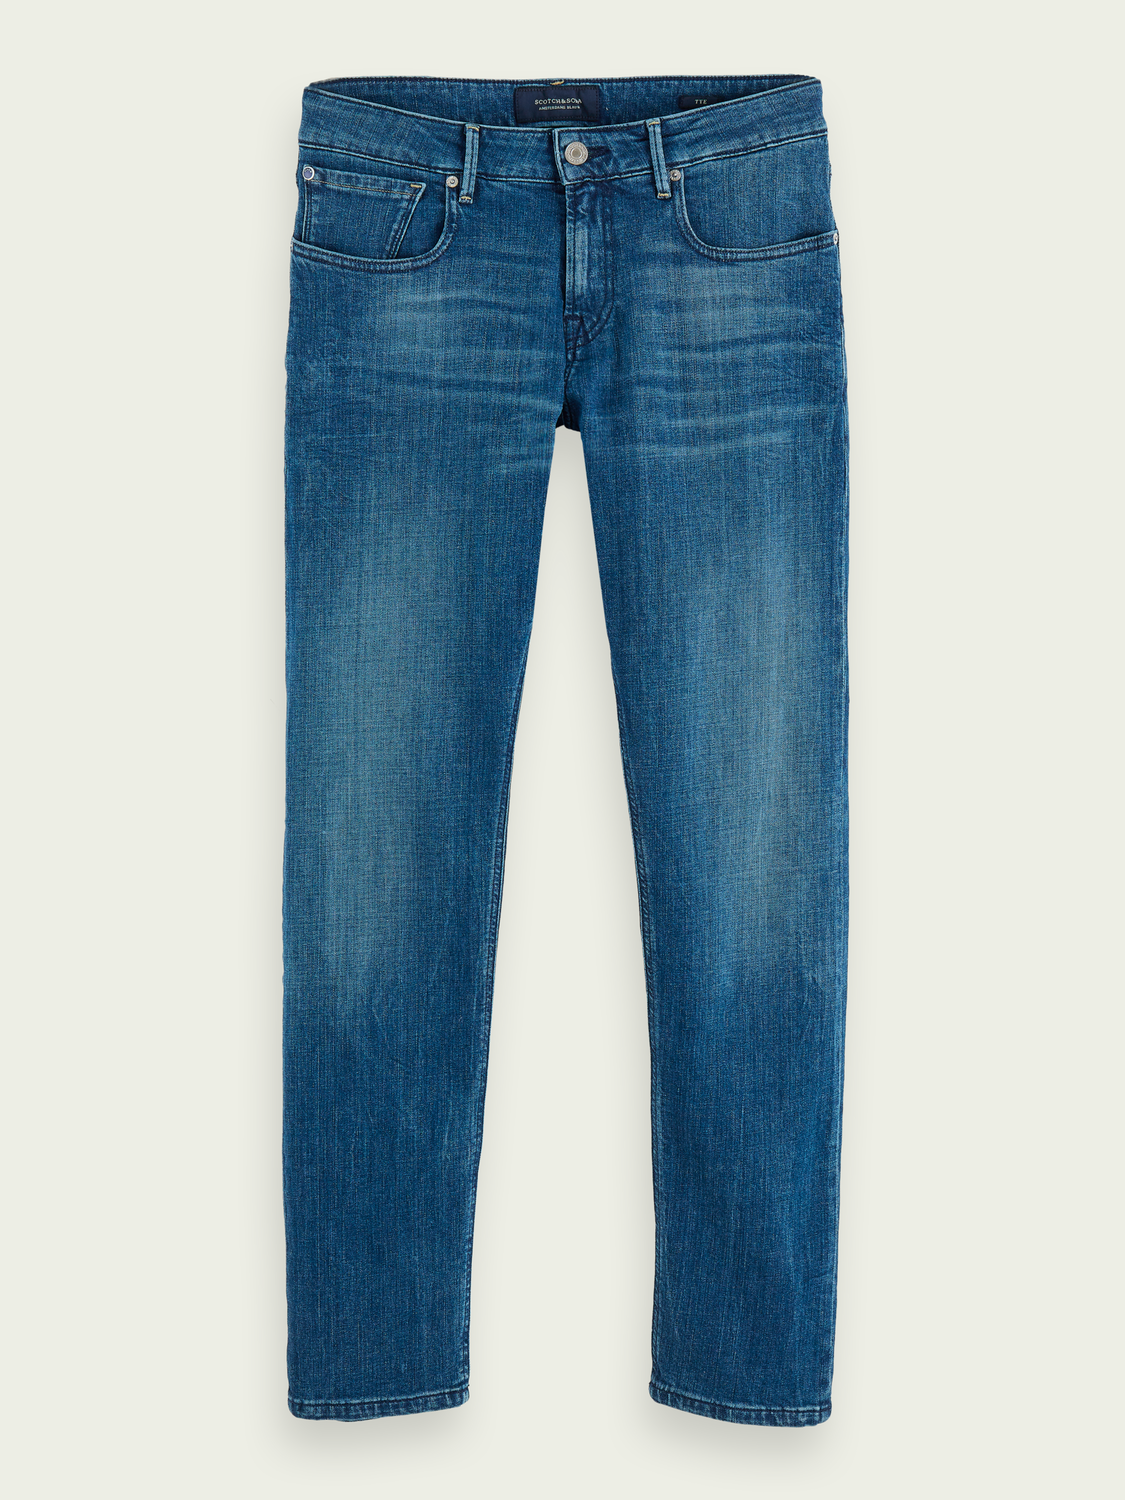 Men Tye - Daily Icon | Mid-rise slim carrot fit jeans